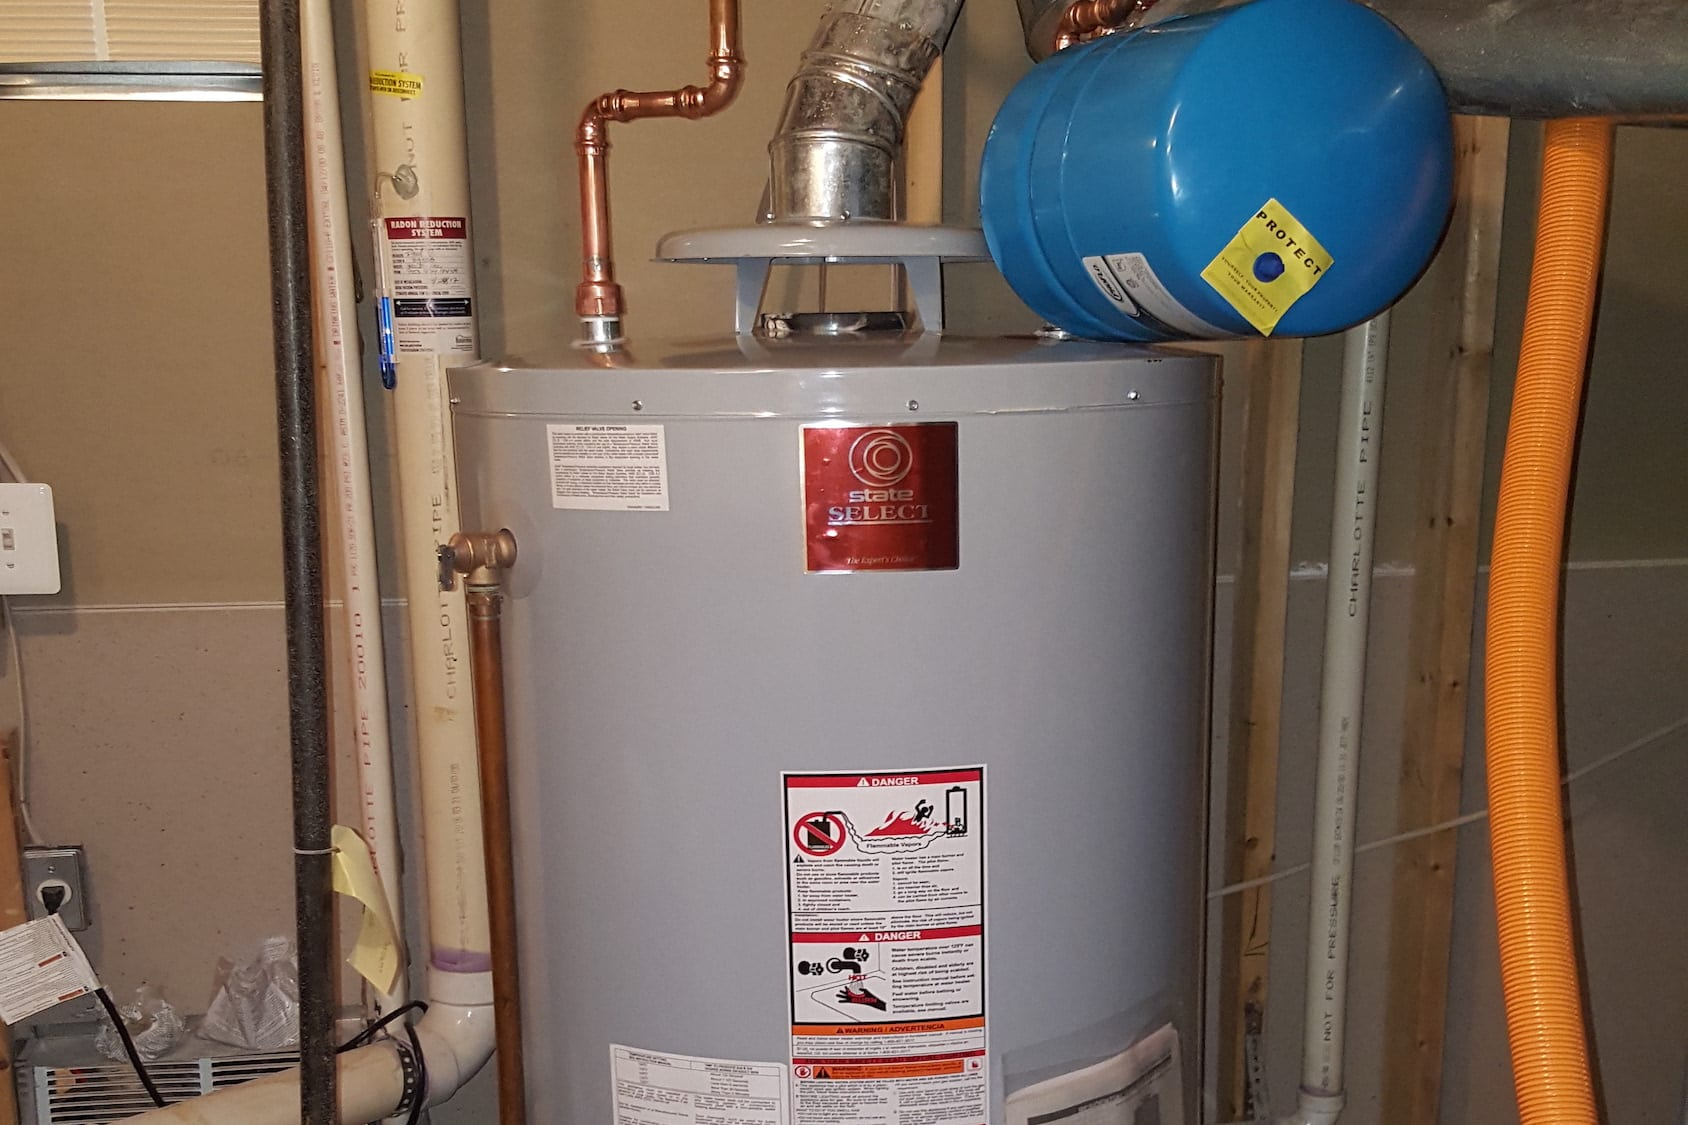 Alluring Water Heater Repair Plumbing Services Plumb Professionals Select Water Heater Age Select Water Heater Vacation Mode houzz-03 State Select Water Heater